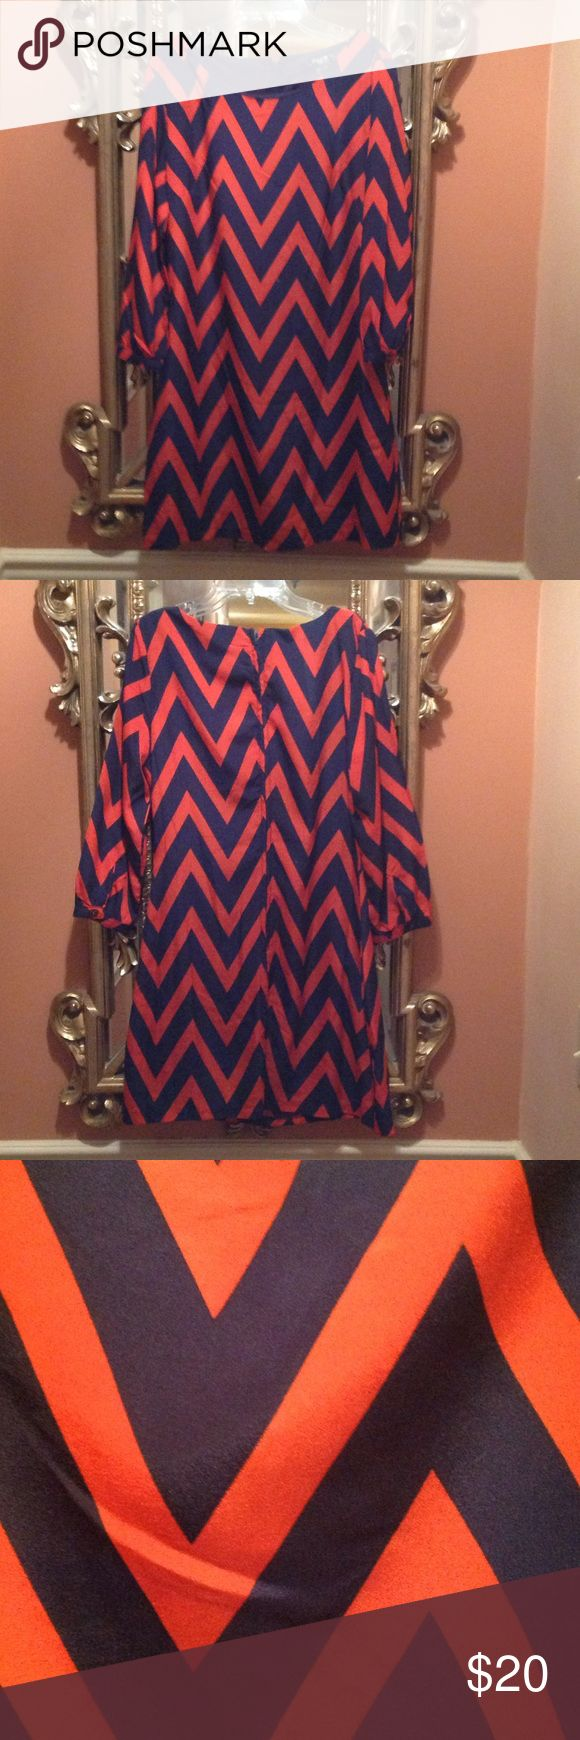 Size 9 Chevron Dress Size 9 Coral and navy blue Chevron dress. It is fully lined with a zipper down the back. It is long sleeved with a button at the wrist. Perfect condition. Dresses